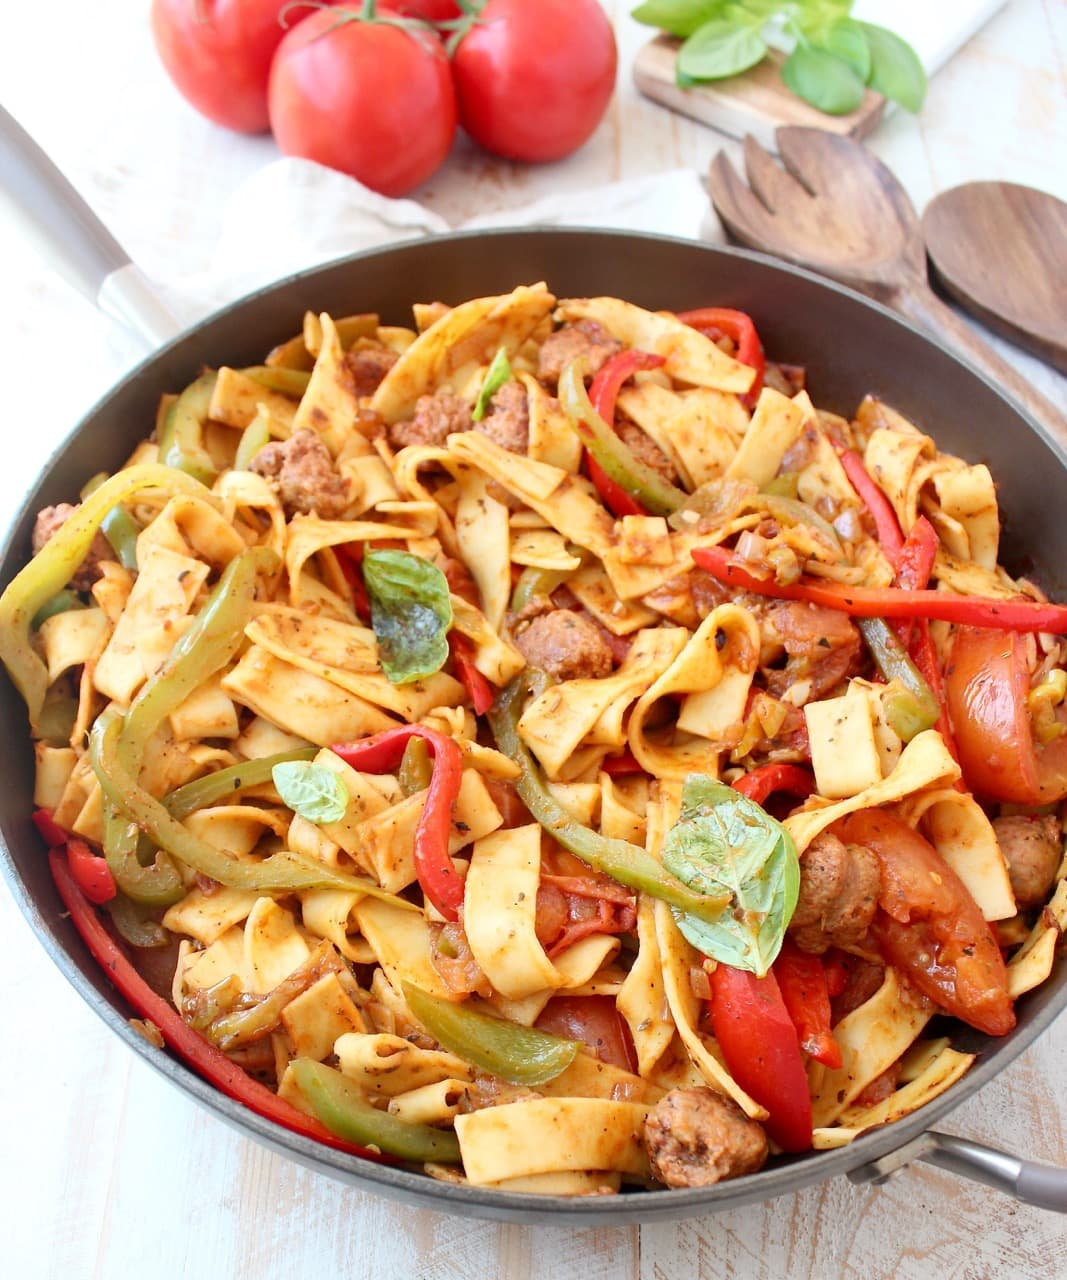 Italian Drunken Noodles with Peppers and Sausage